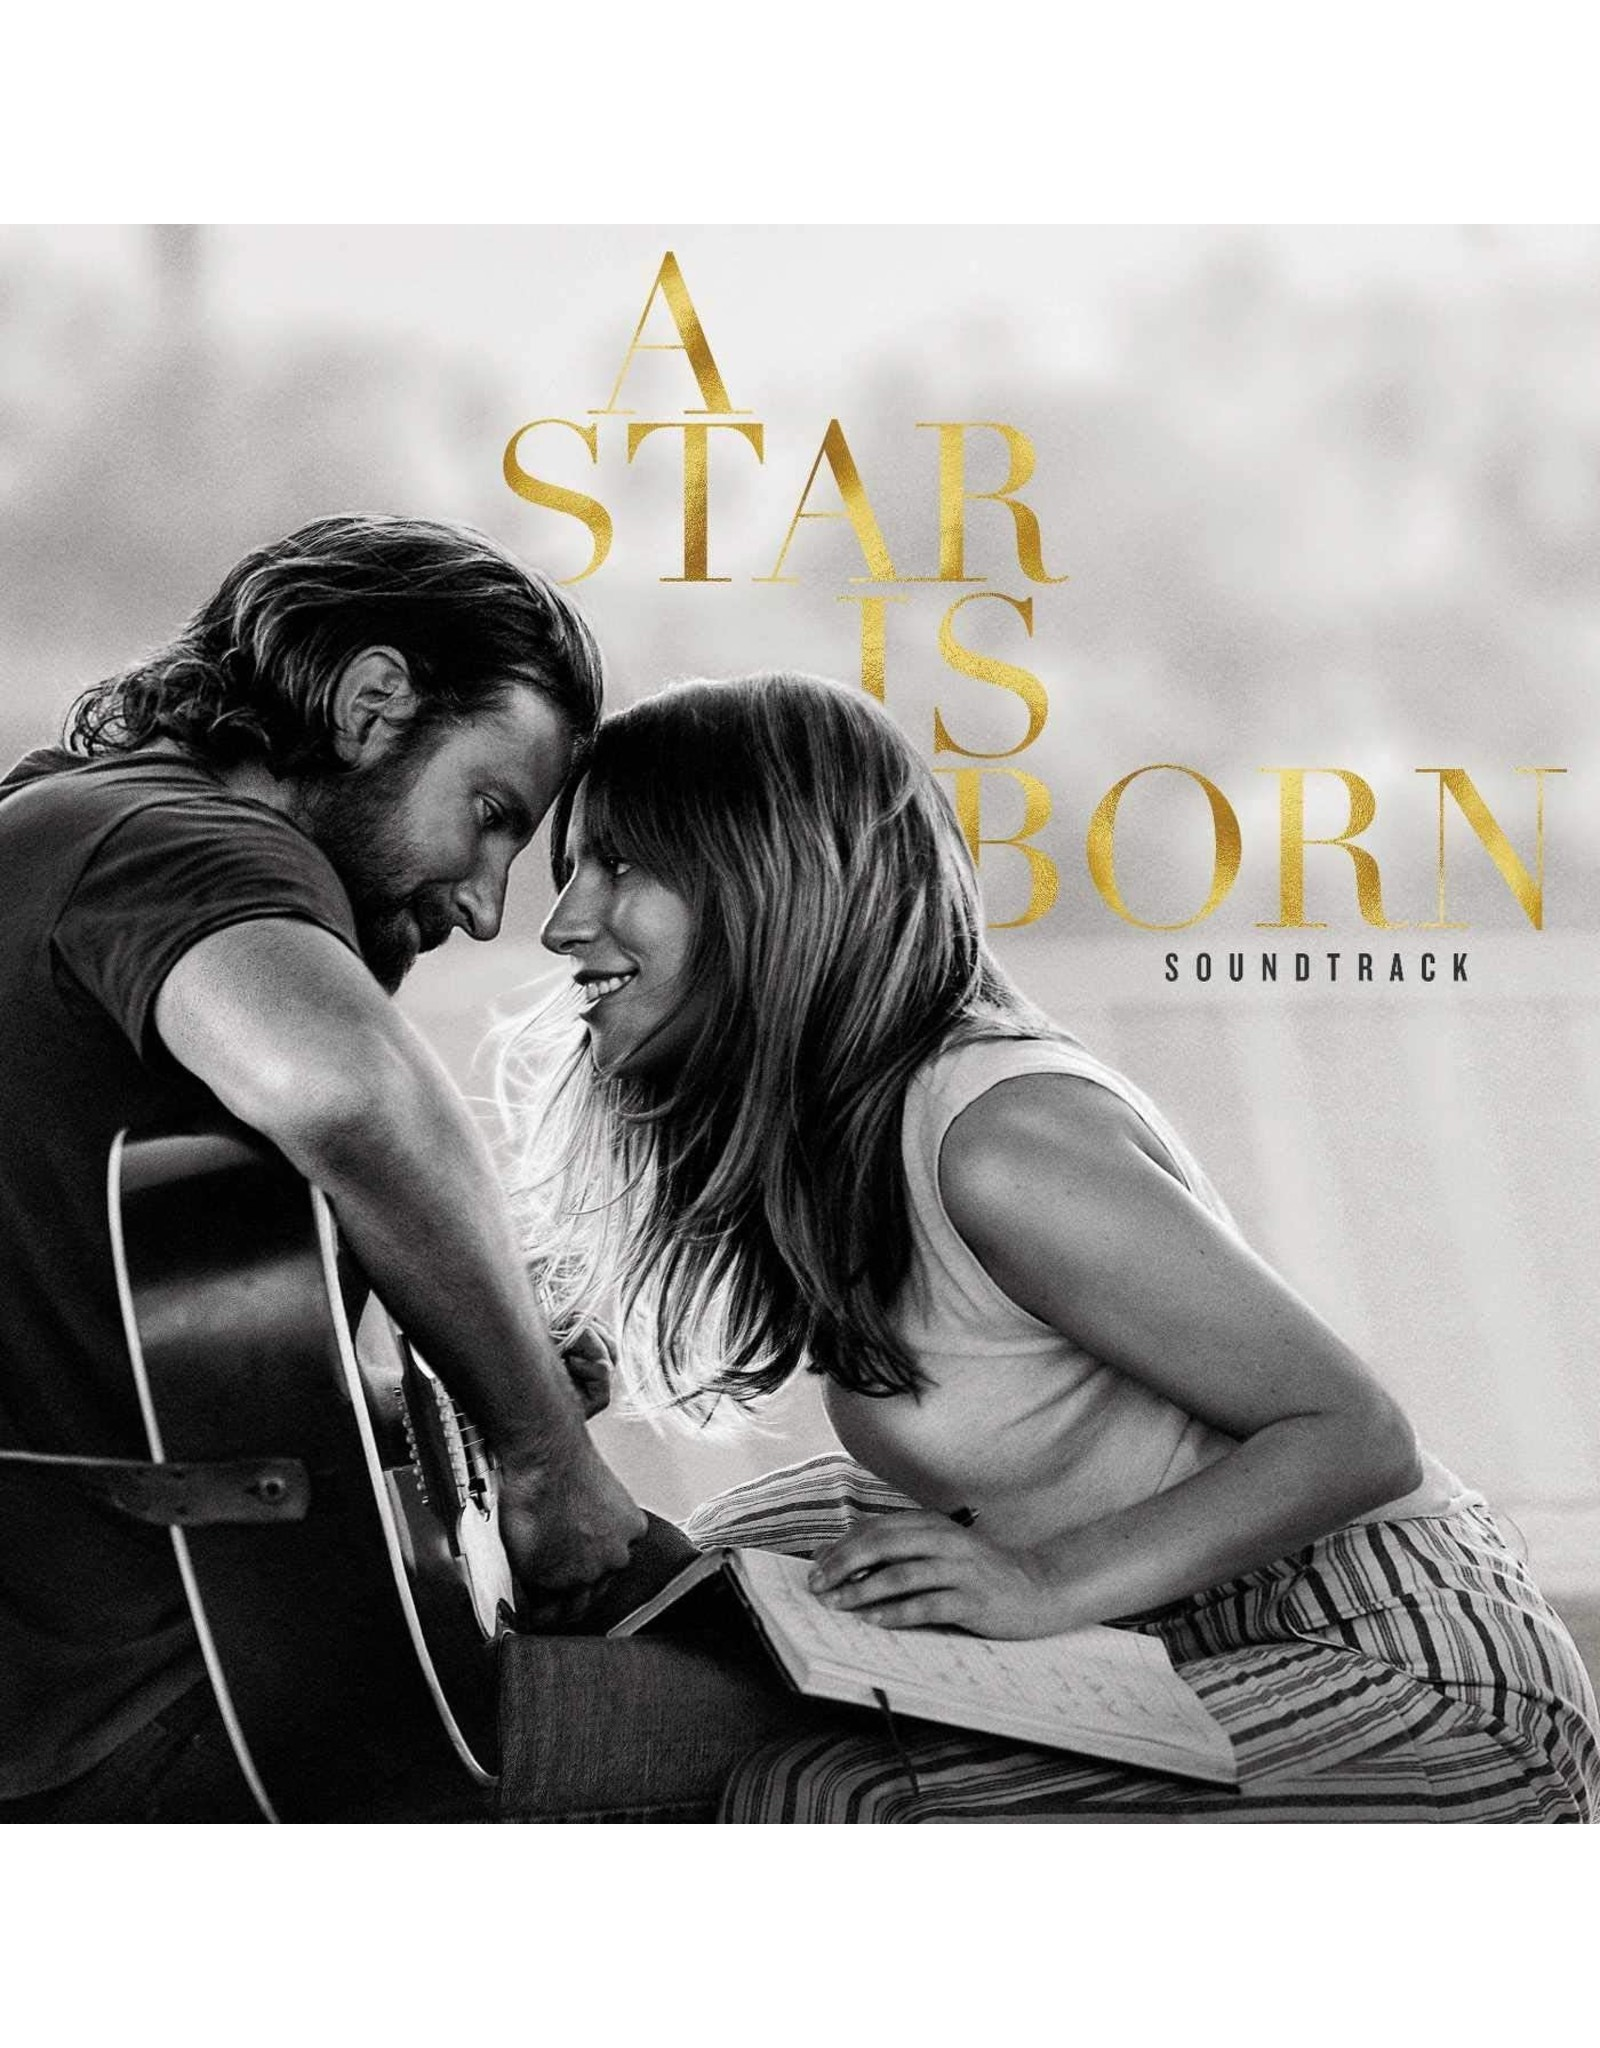 Lady Gaga / Bradley Cooper - A Star Is Born